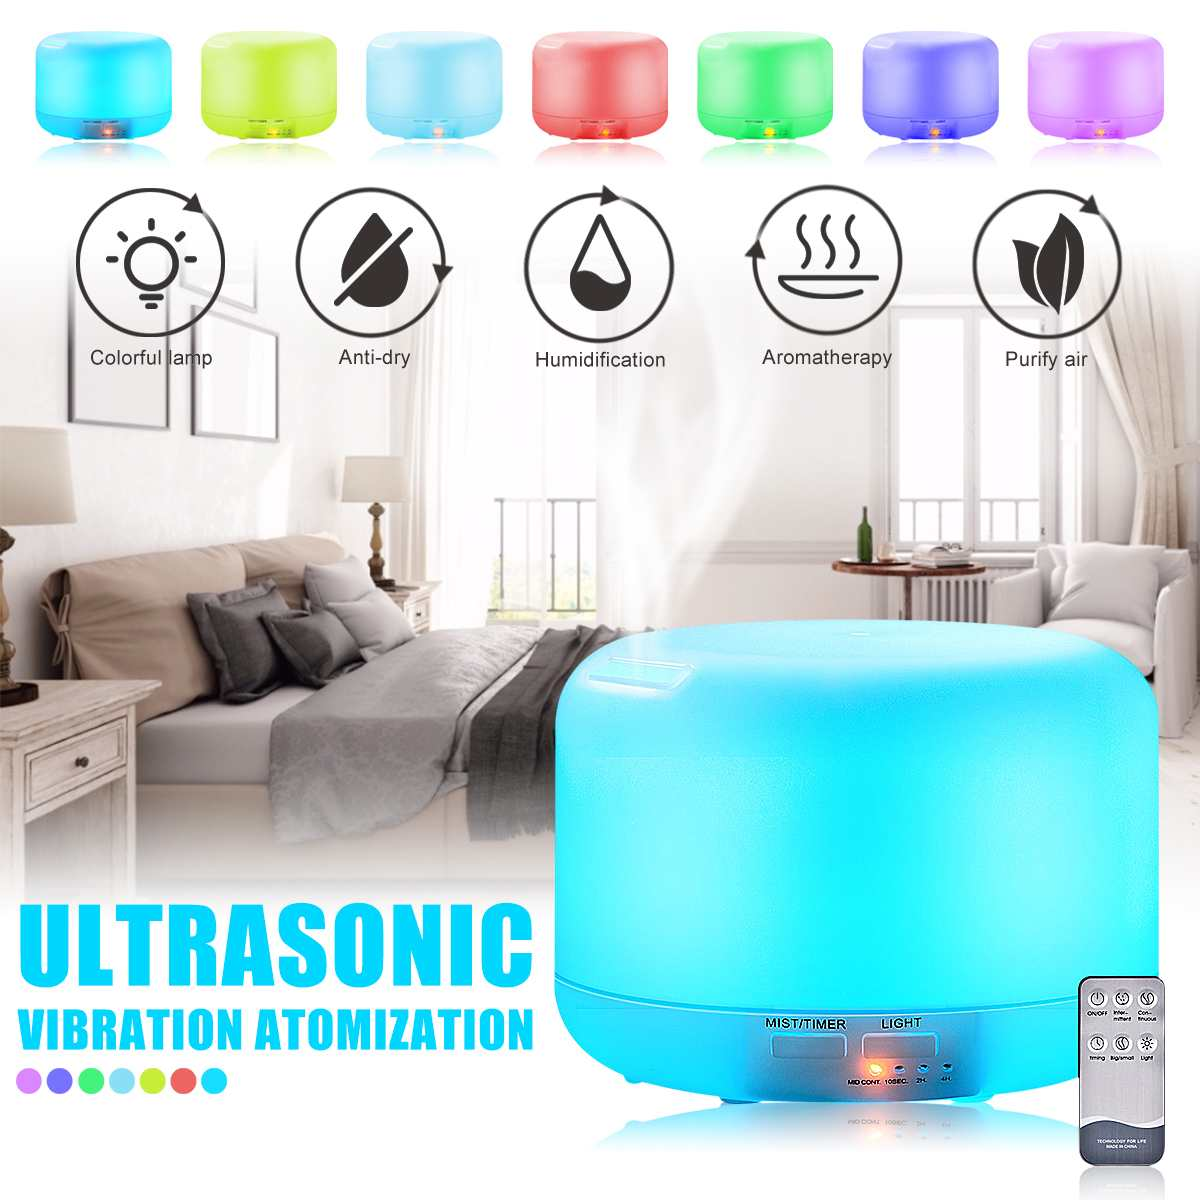 300ml Aromatherapy Humidifier Aroma LED Oil Diffuser Remote Control Air  Purifier EU Plug 12W for Home Yoga Office 36dB 7 Colors